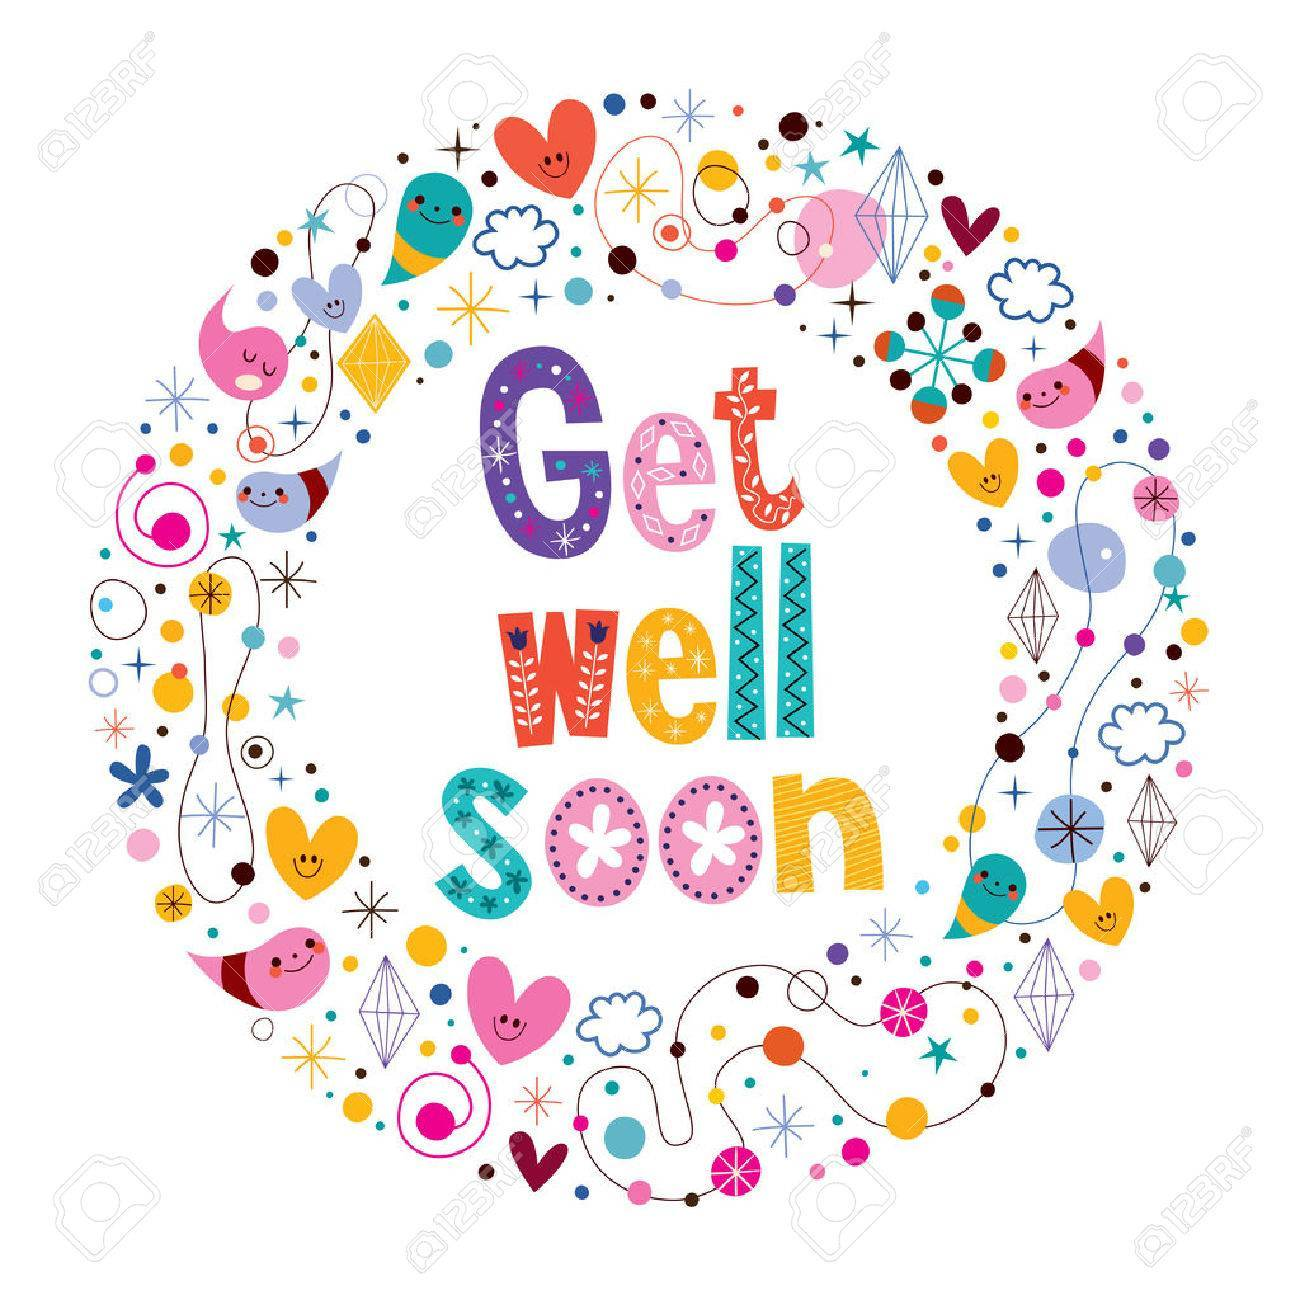 Free clipart images get well soon 5 » Clipart Portal.